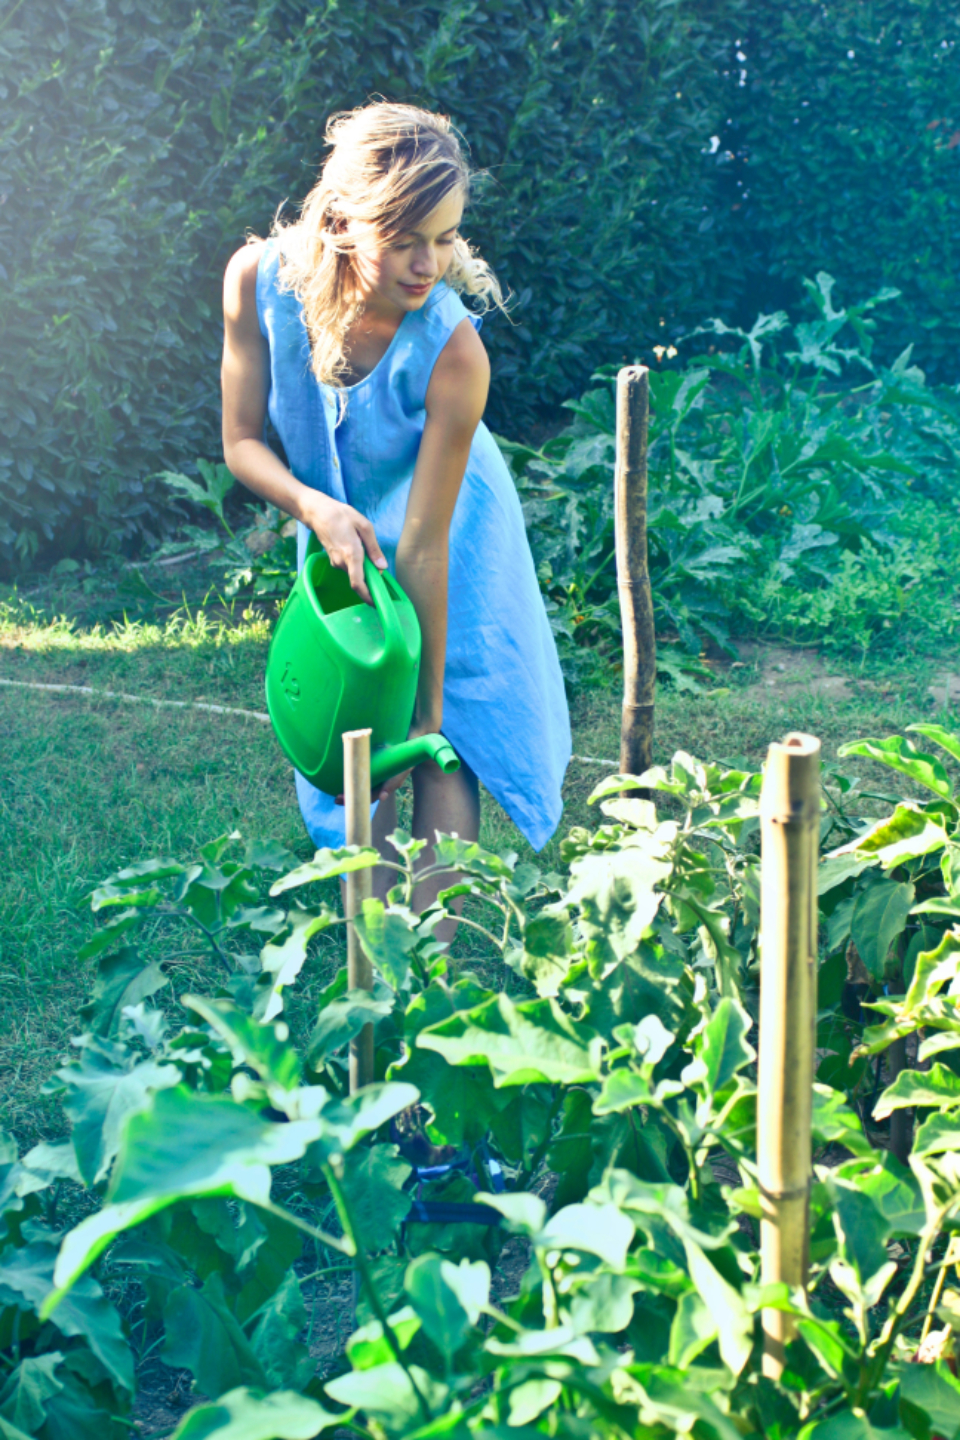 woman blue dress garden yard work plants nature watering can water grow farming